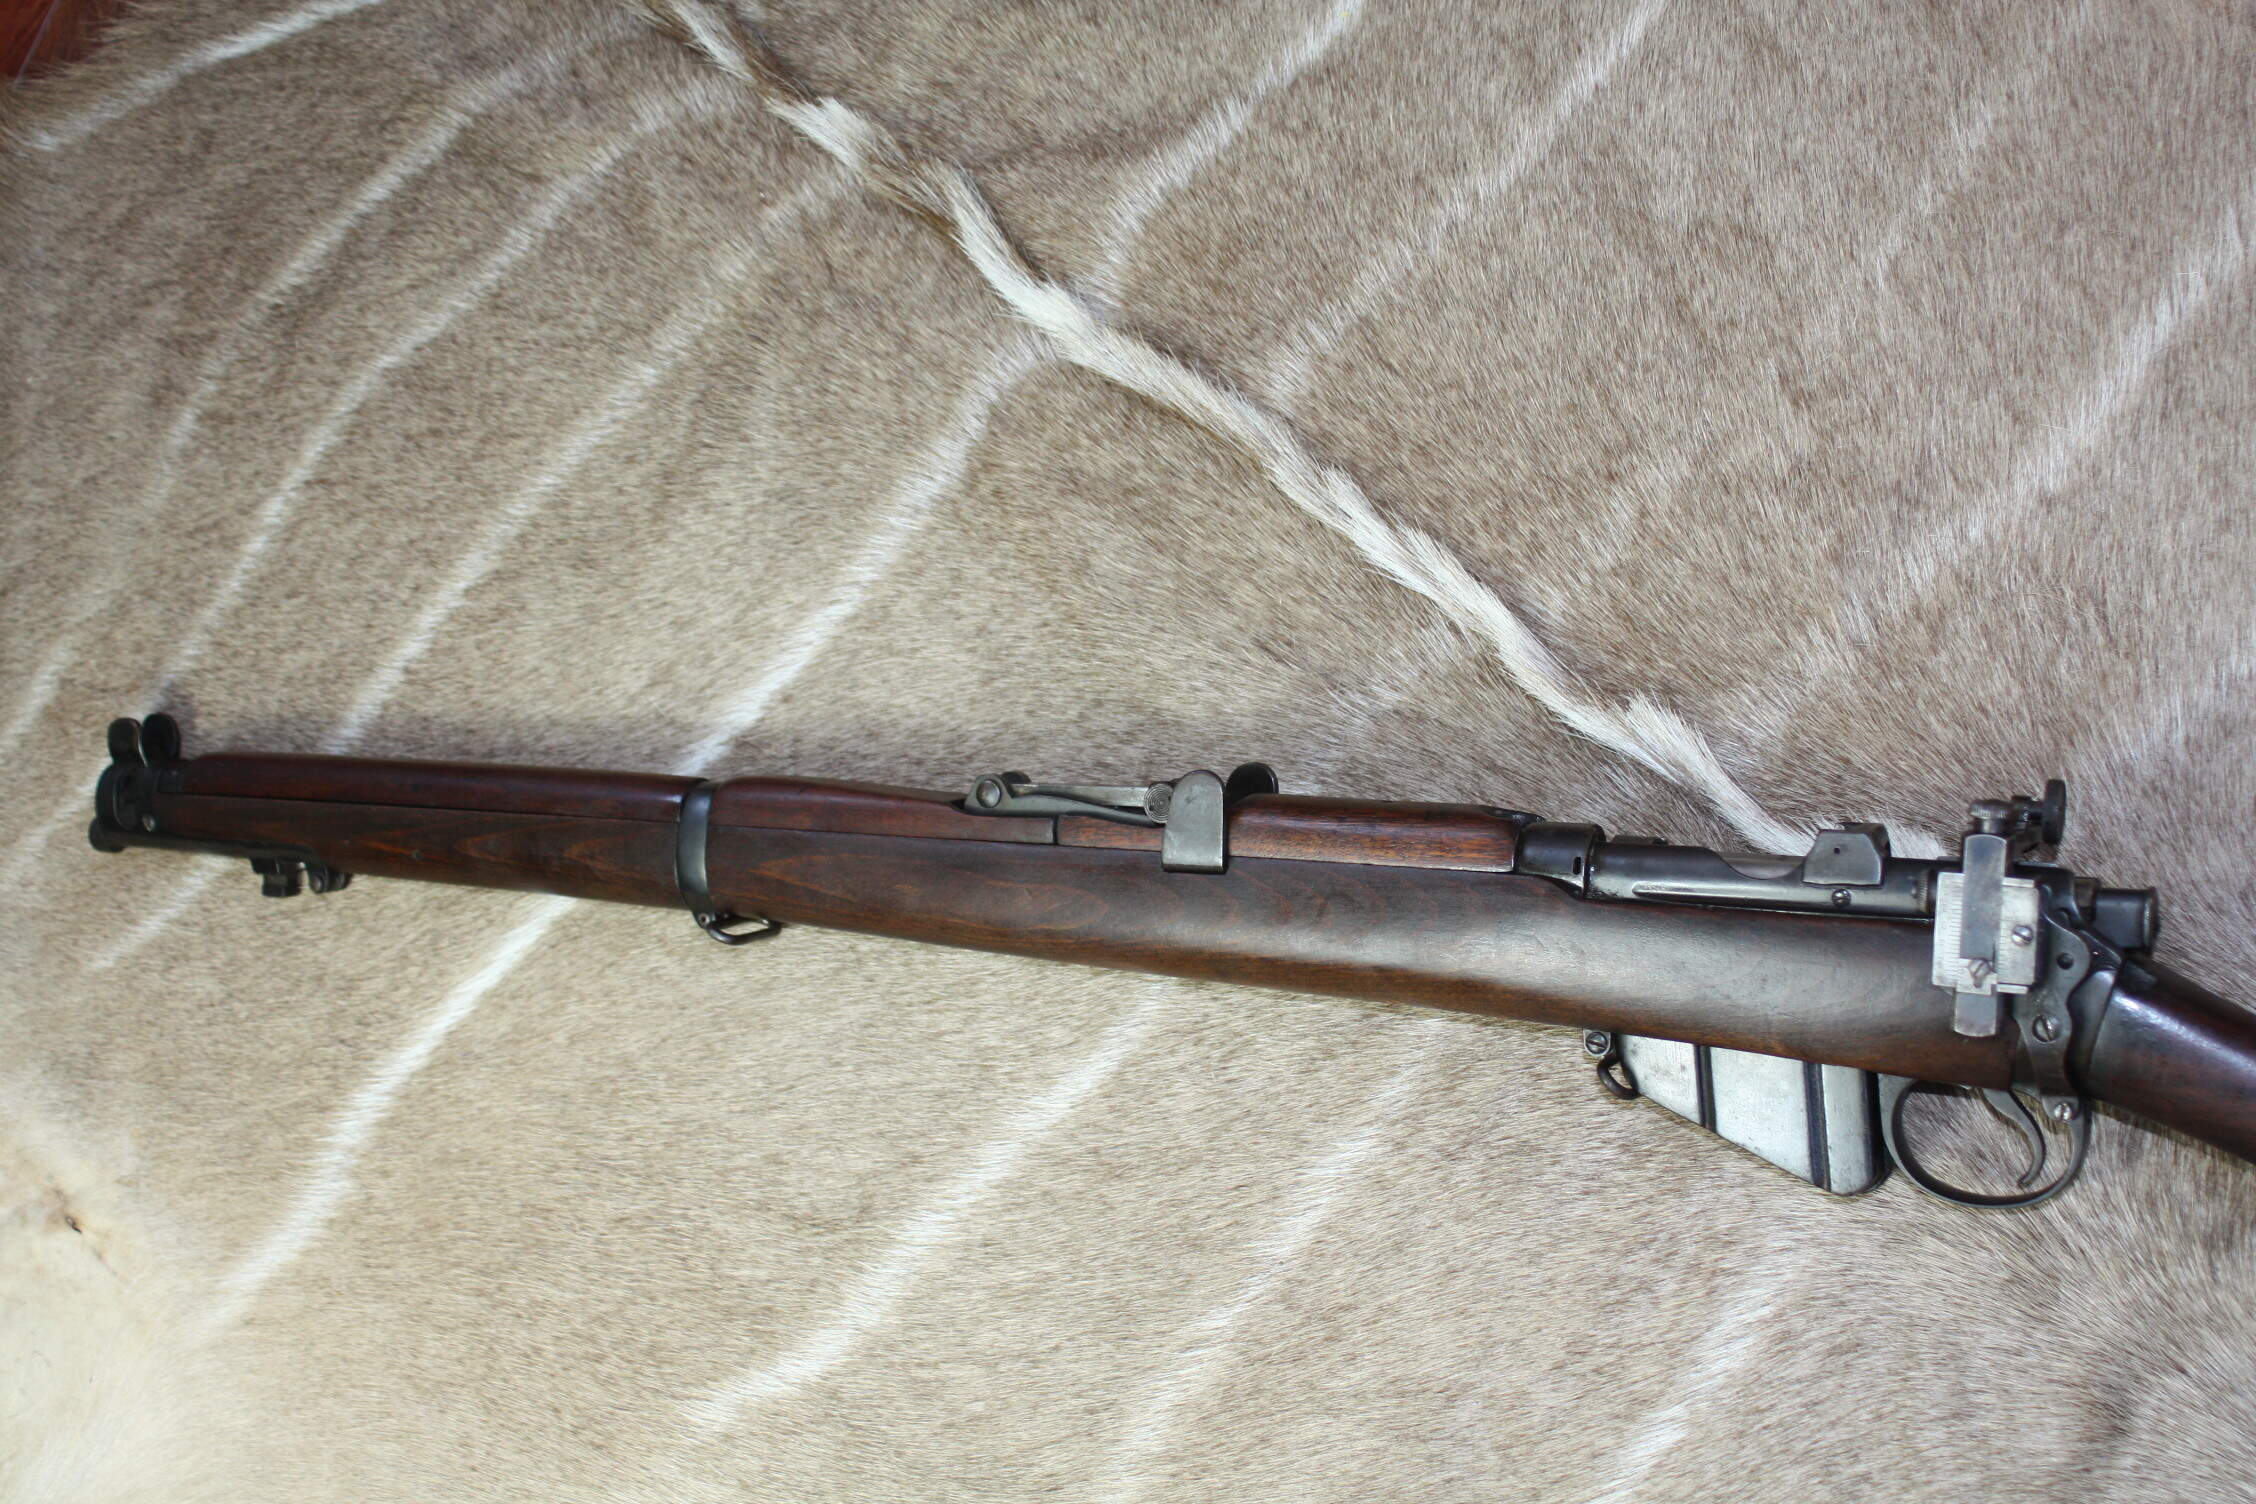 B.S.A. CO. .303 'No 1' BOLT-MAGAZINE SERVICE RIFLE